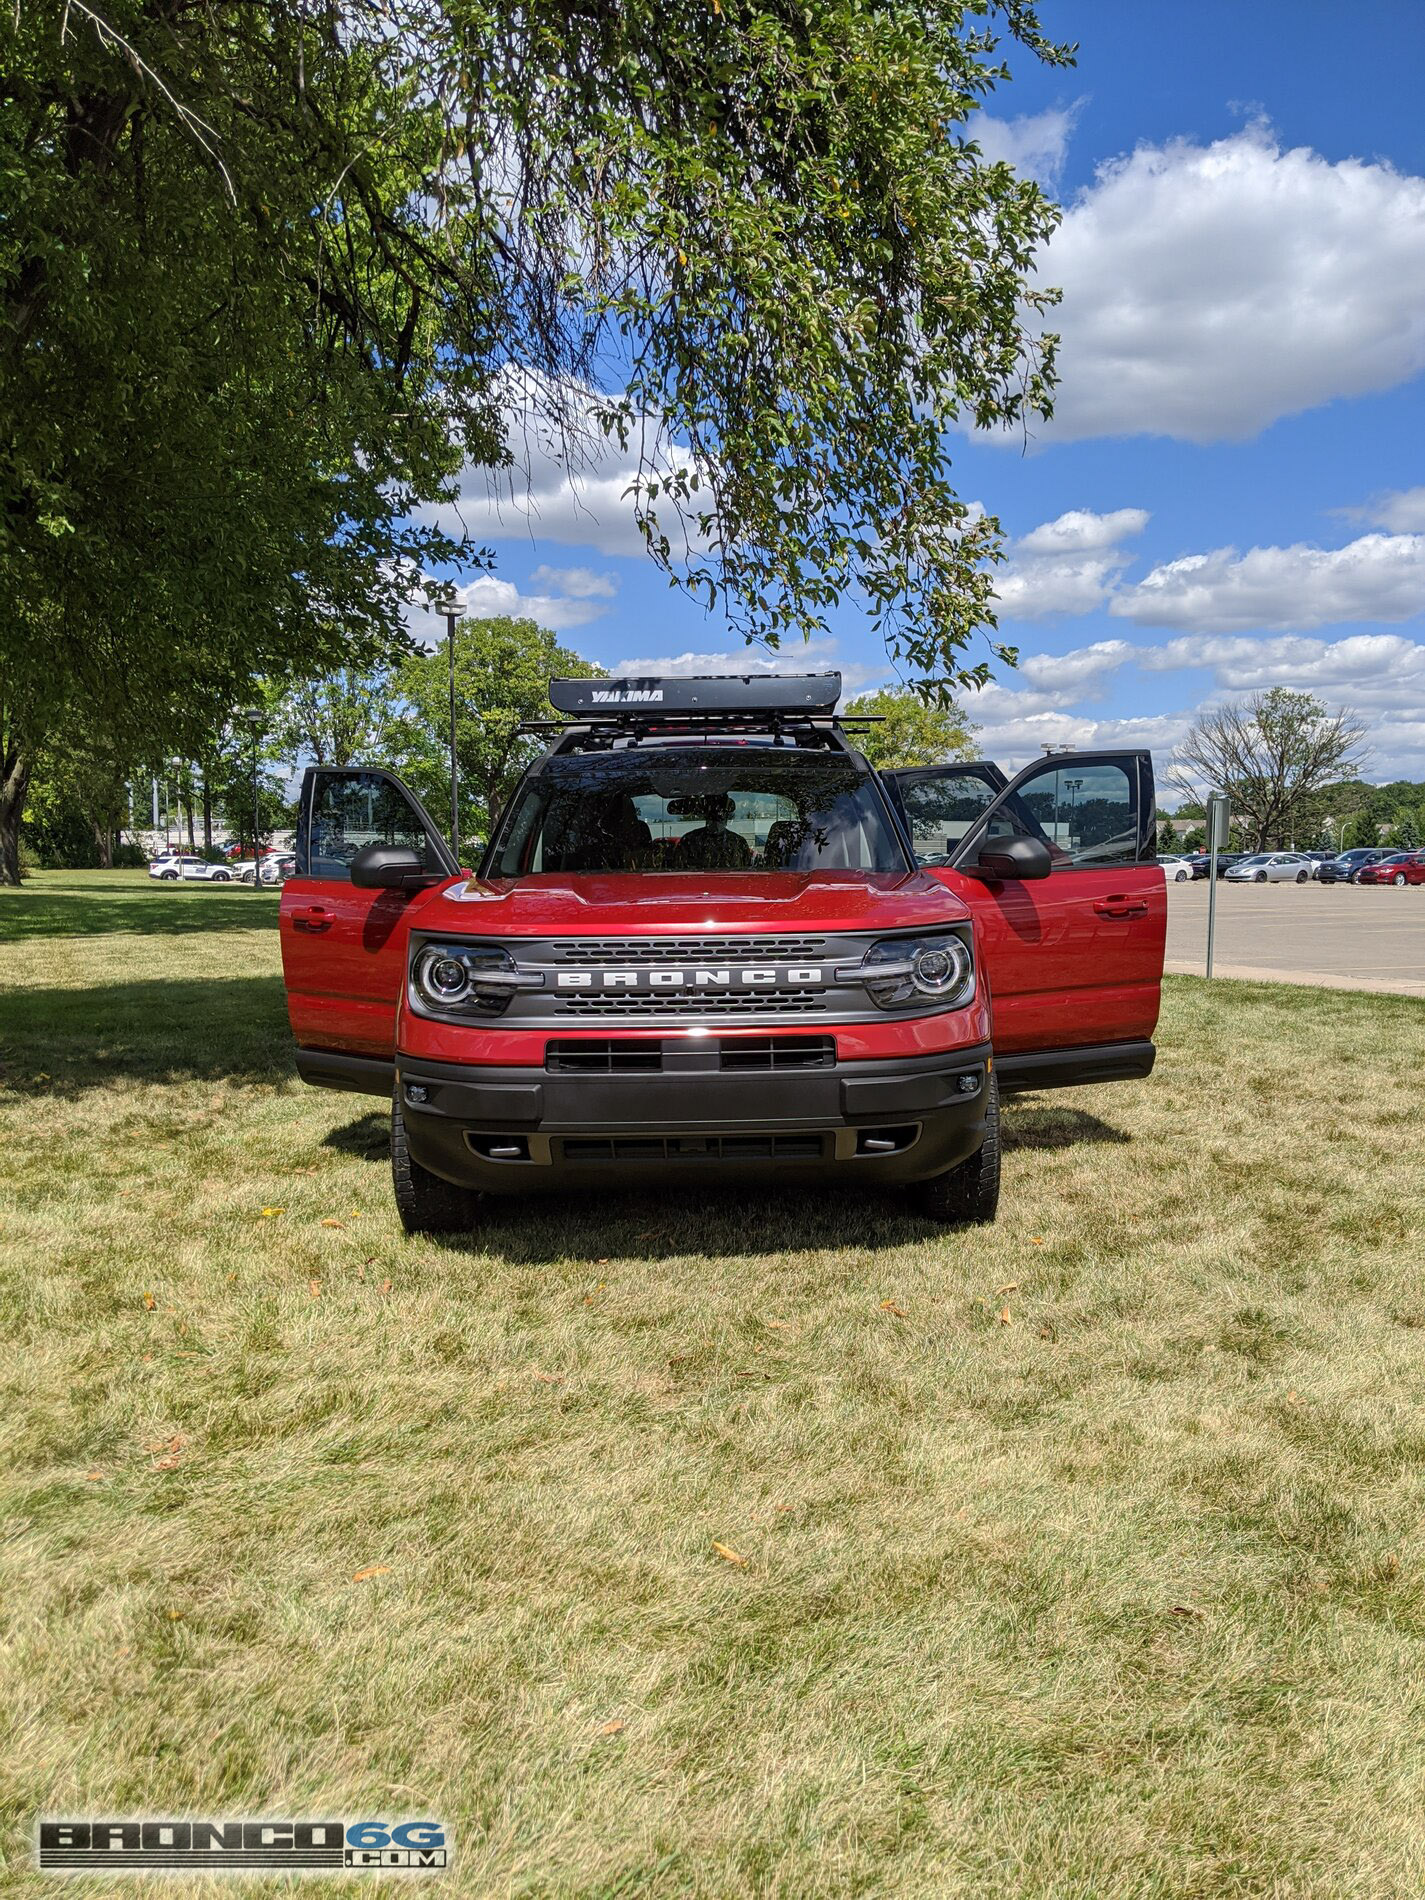 2021 Ford Bronco Employee Roundup Event 11.jpg